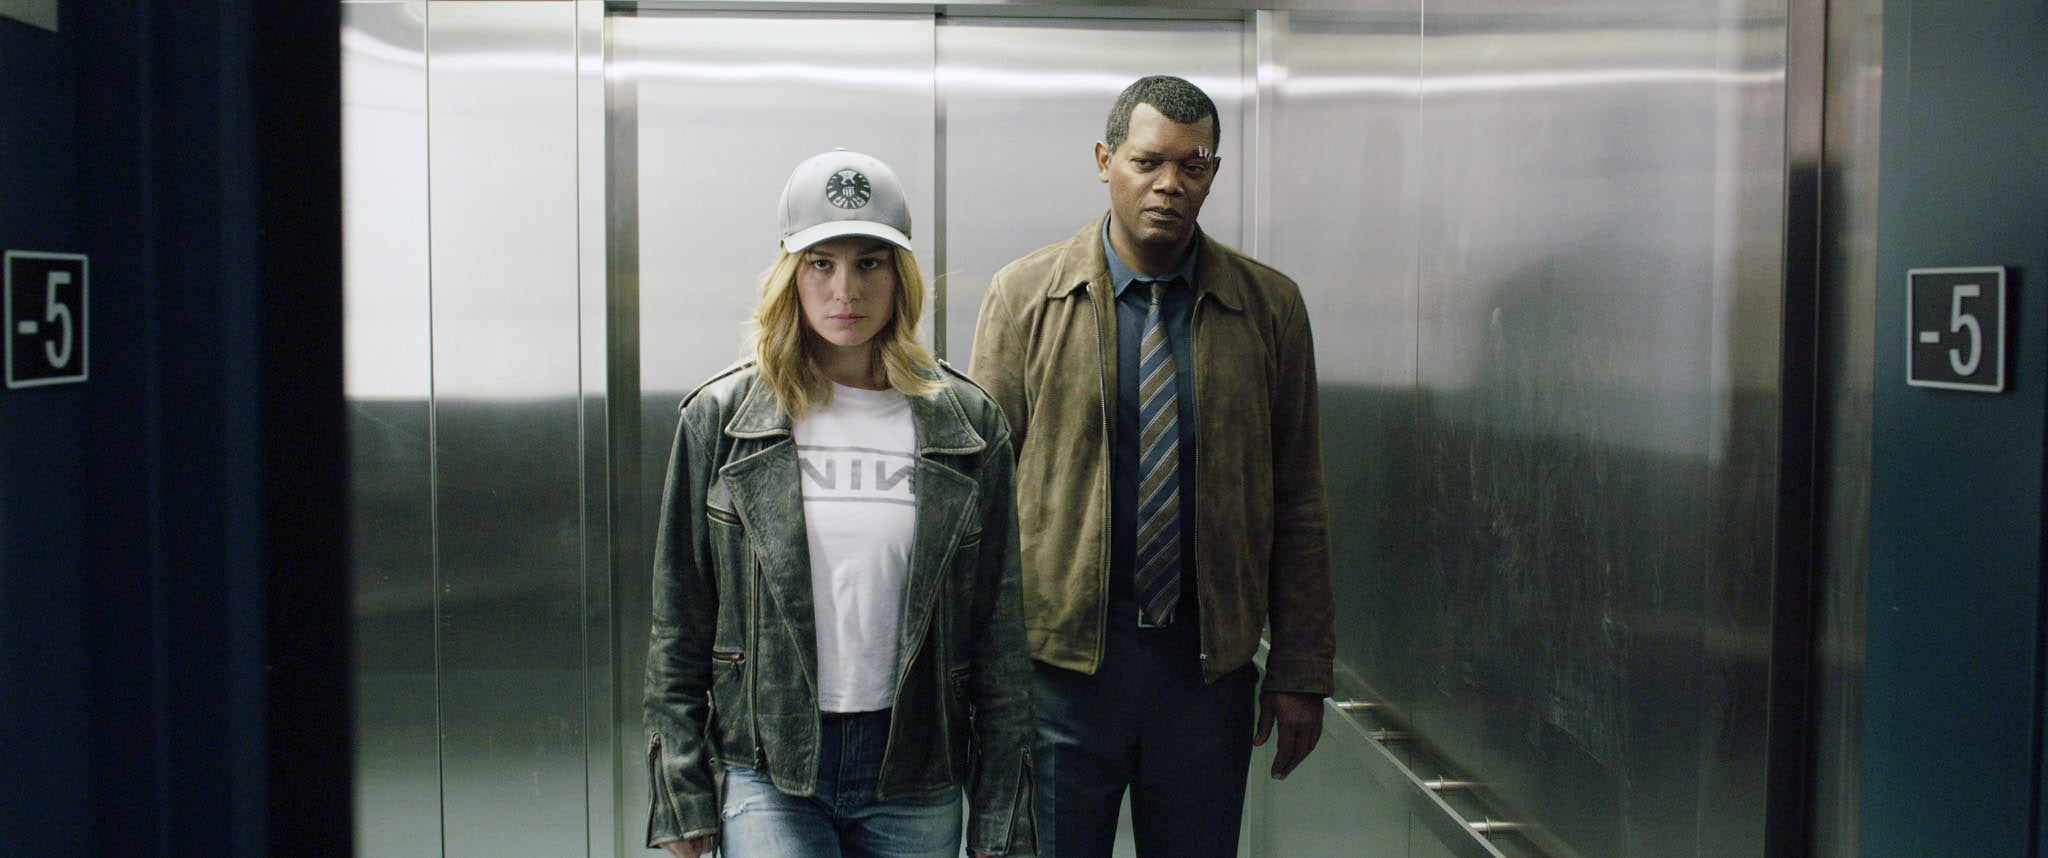 CAPTAIN MARVEL, from left: Brie Larson as Carol Danvers / Captain Marvel, Samuel L. Jackson as Nick Fury, 2019.  Walt Disney Studios Motion Pictures /  Marvel / courtesy Everett Collection